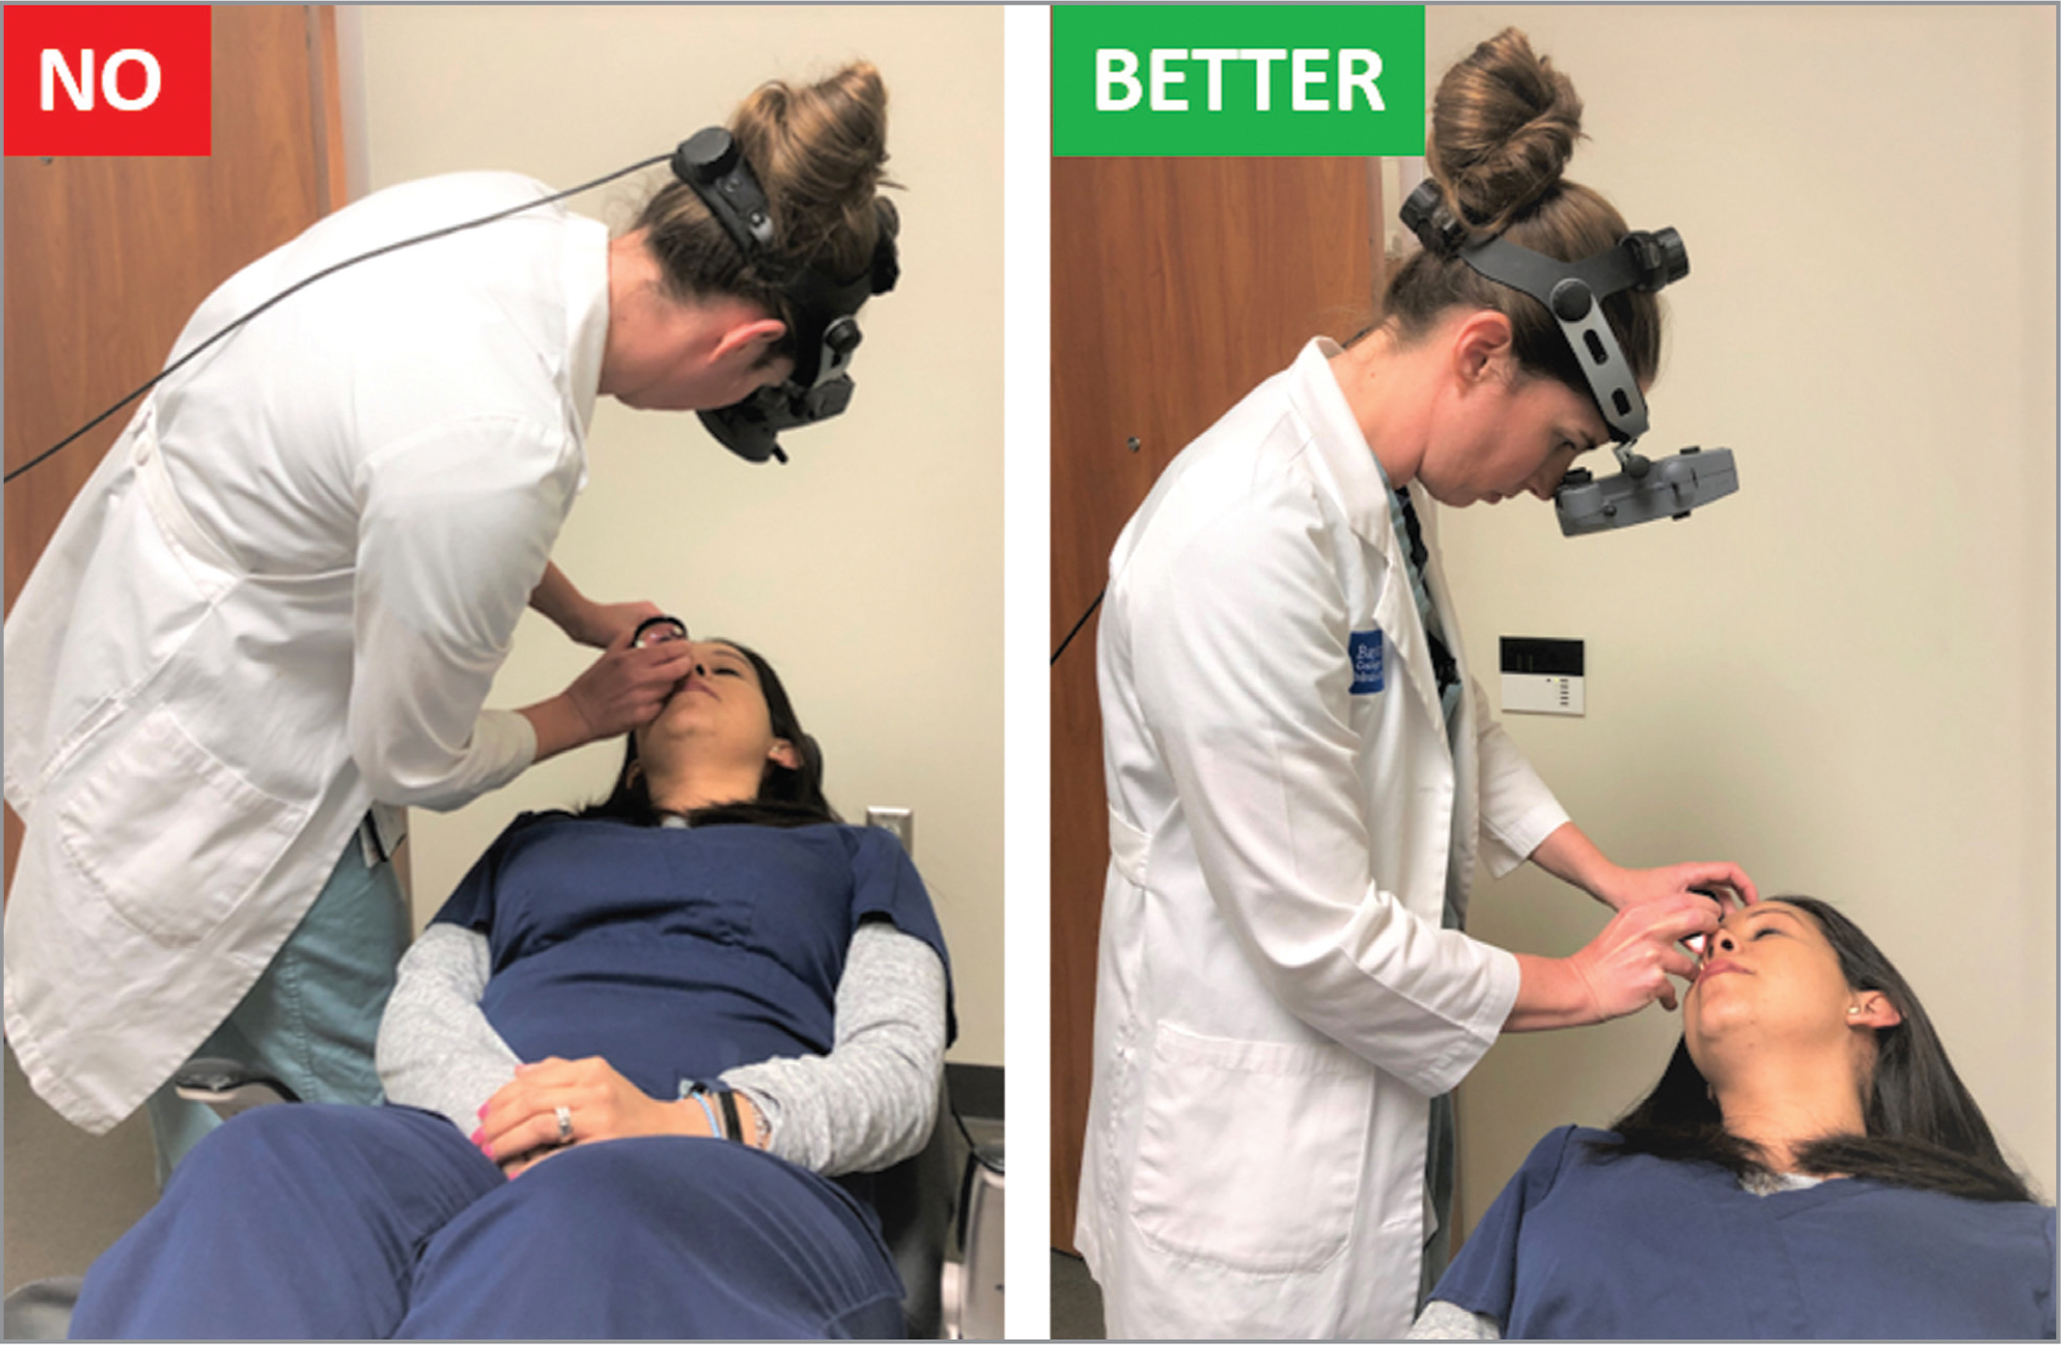 Left: The patient's head is in a neutral position and the chair is too low, causing the physician to contort her back and neck in an unnatural way while viewing the temporal periphery of the patient's right eye. Right: Raising the chair to an appropriate height and rotating the patient's head 30° allows facilitates a more ergonomic stance.